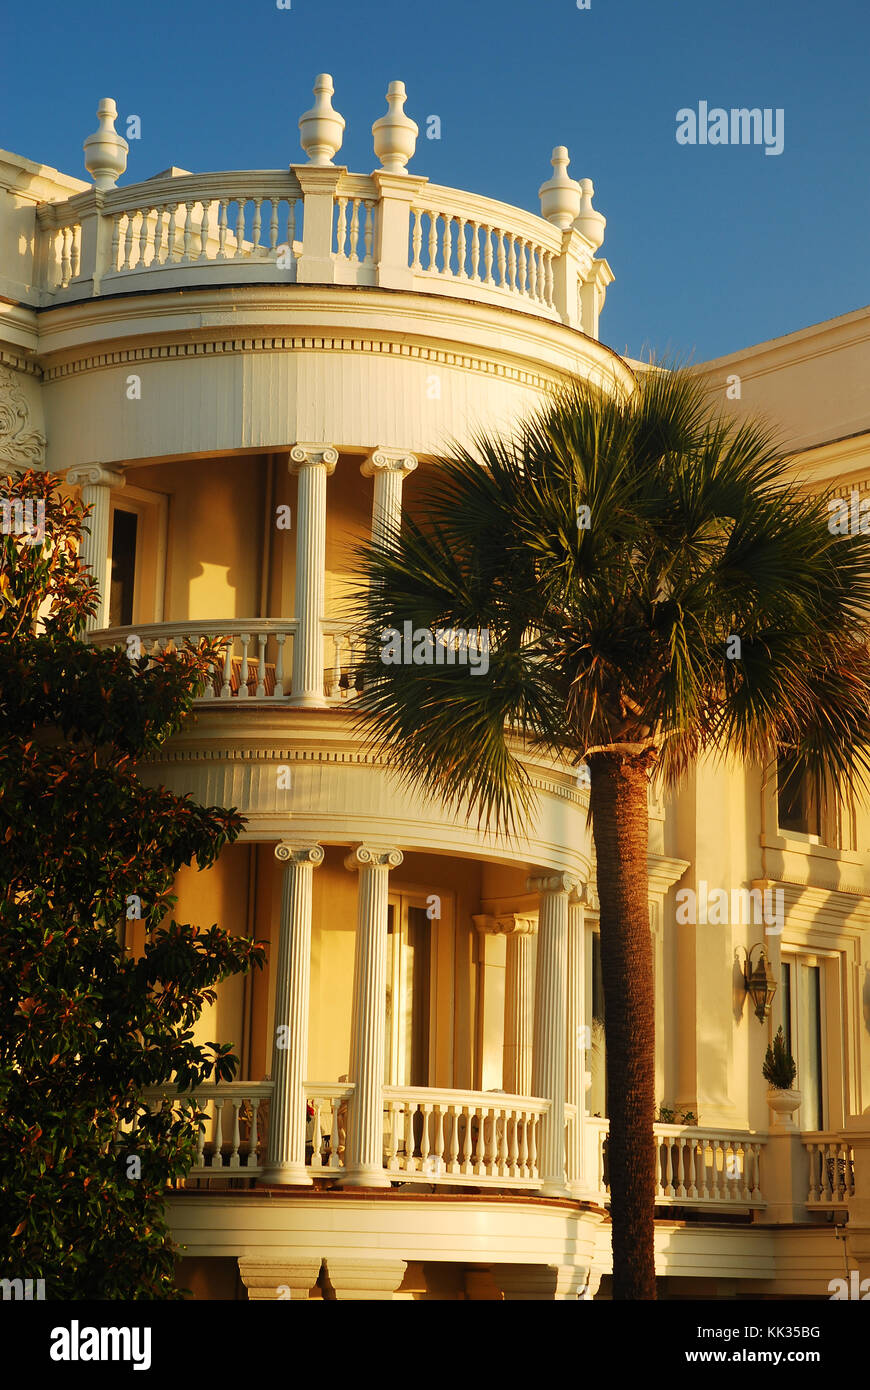 A rounded portico is a prominent feature of Antebellum homes found along the waterfront of Charleston, South Carolina - Stock Image